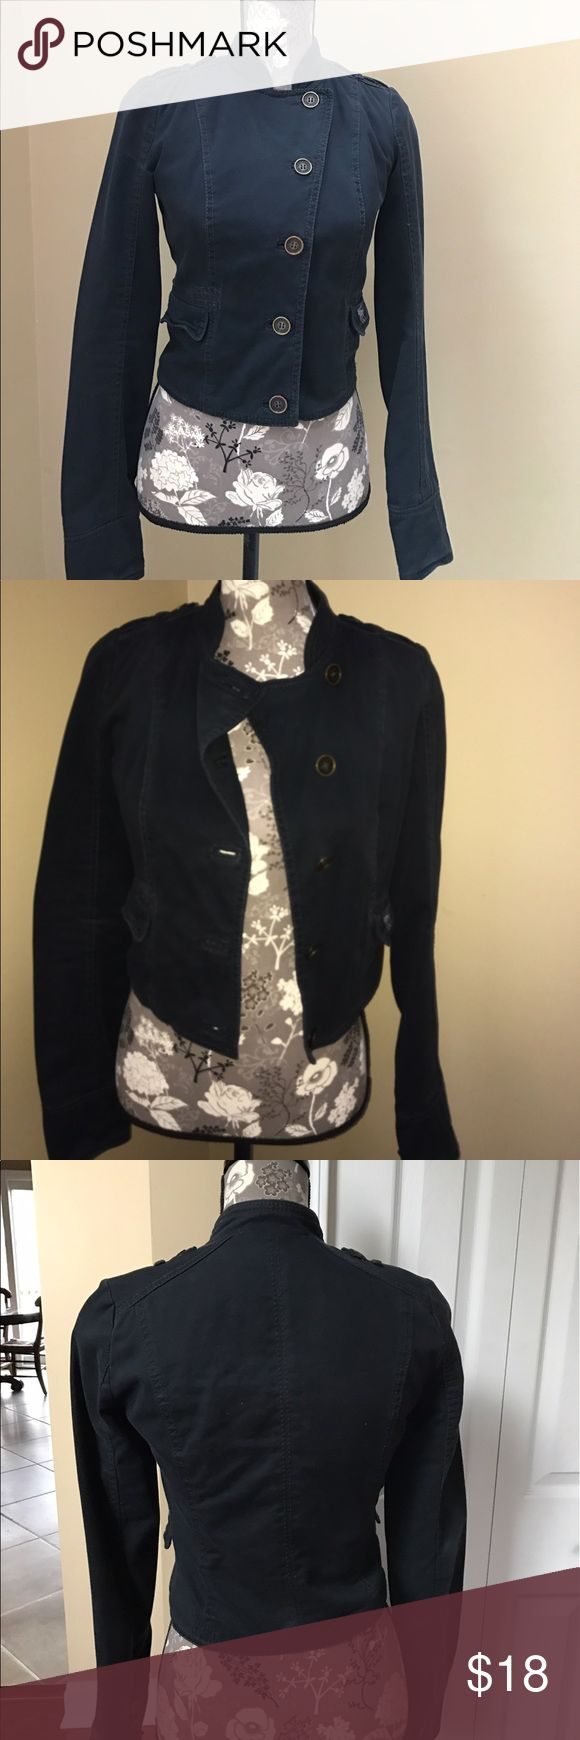 Abercrombie and Fitch Military Jacket Abercrombie and Fitch Military Jacket size XS.  Excellent condition.  Deep navy Denim military jacket, with detailed stitching, details on shoulder with metal buttons, 3 buttons by cuff, lined.   100% cotton. Abercrombie & Fitch Jackets & Coats